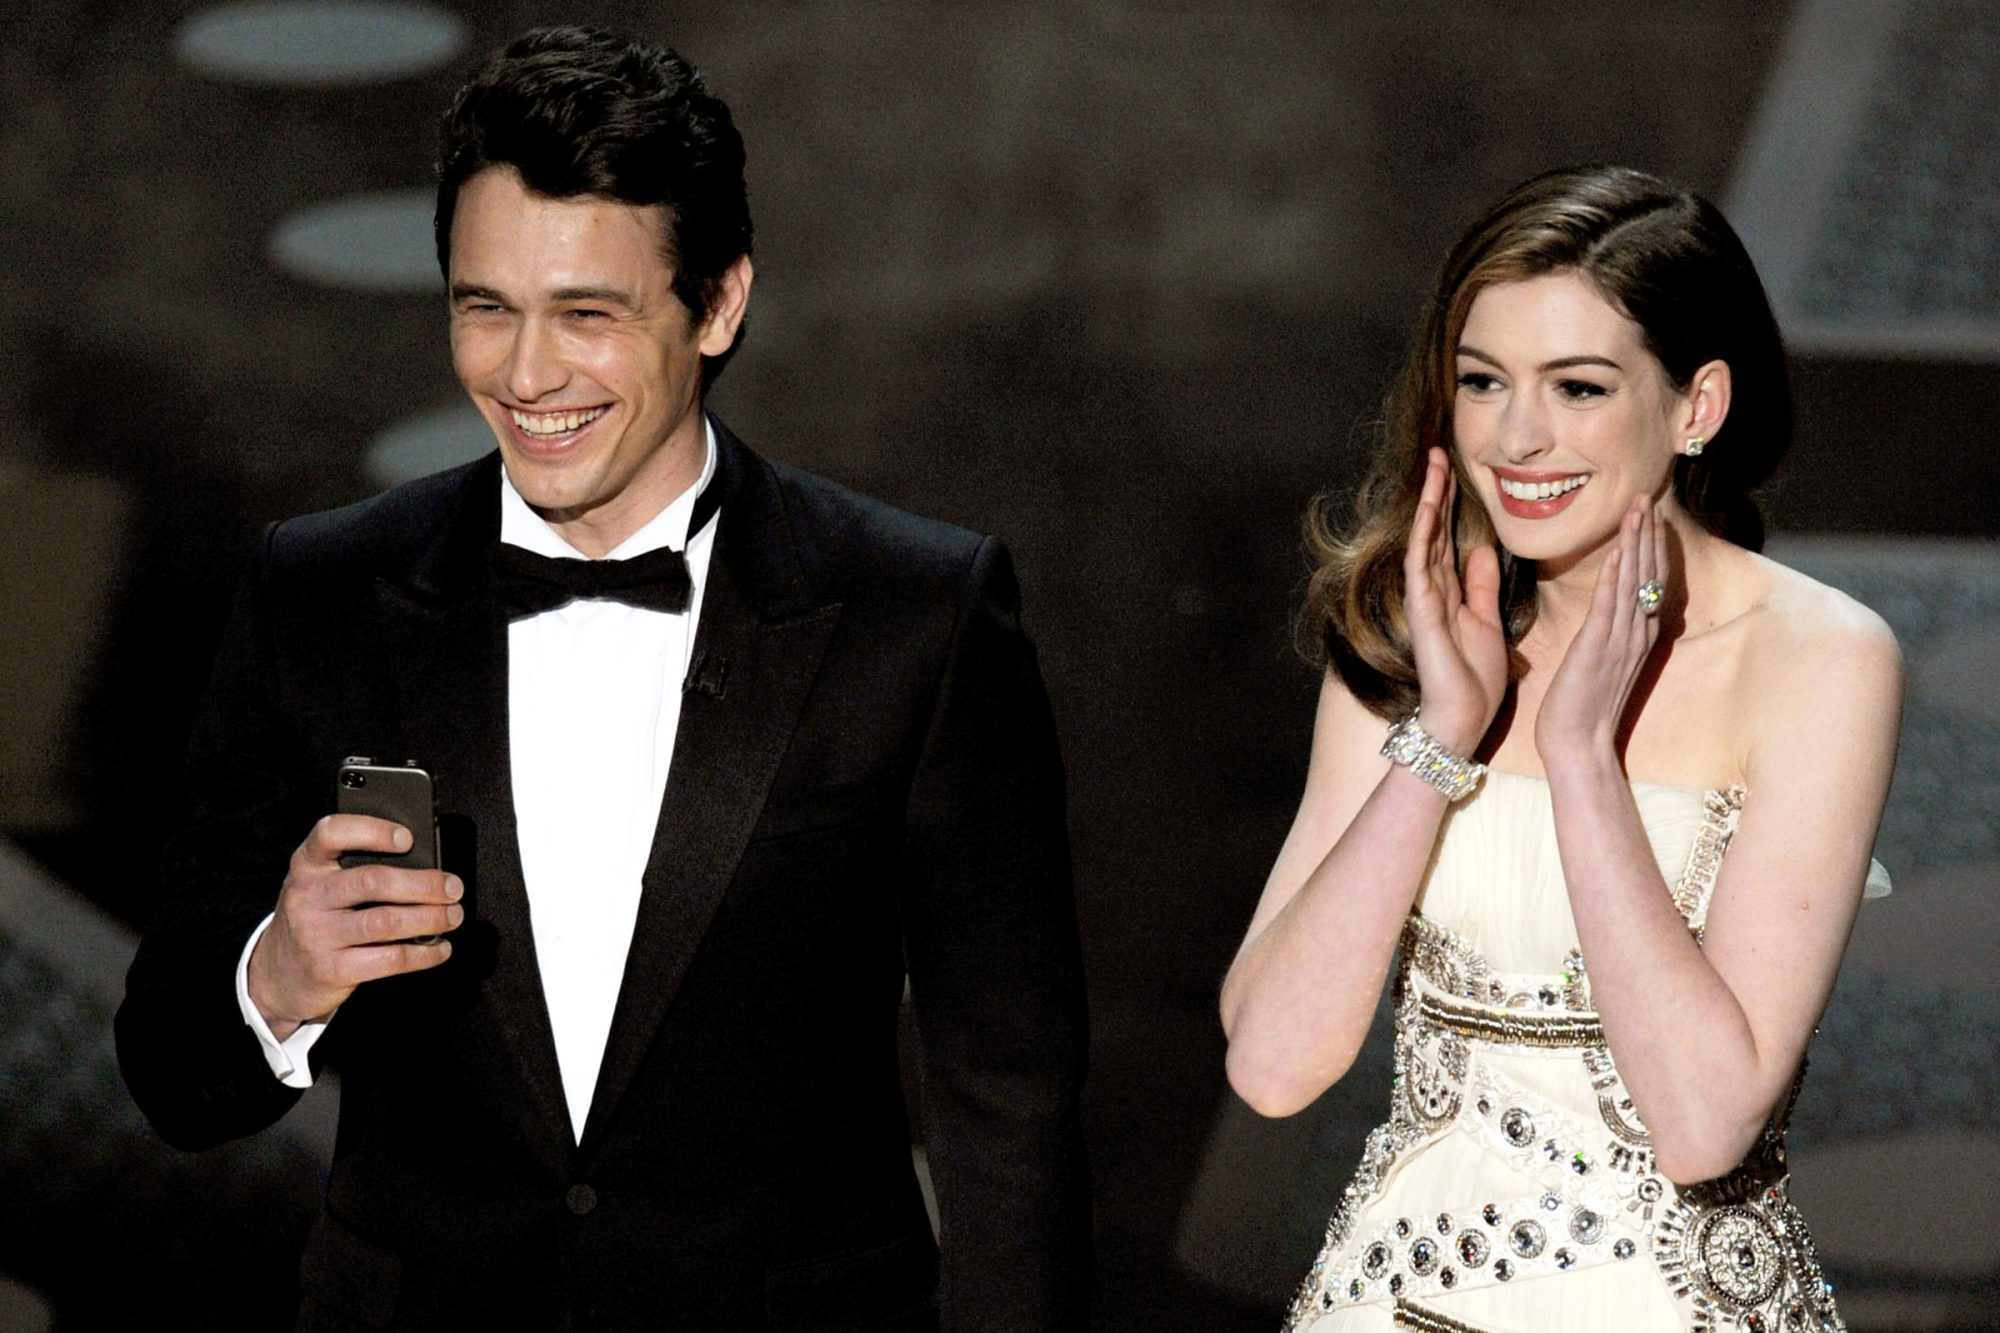 James Franco and Anne Hathaway speak onstage during the 83rd Annual Academy Awards